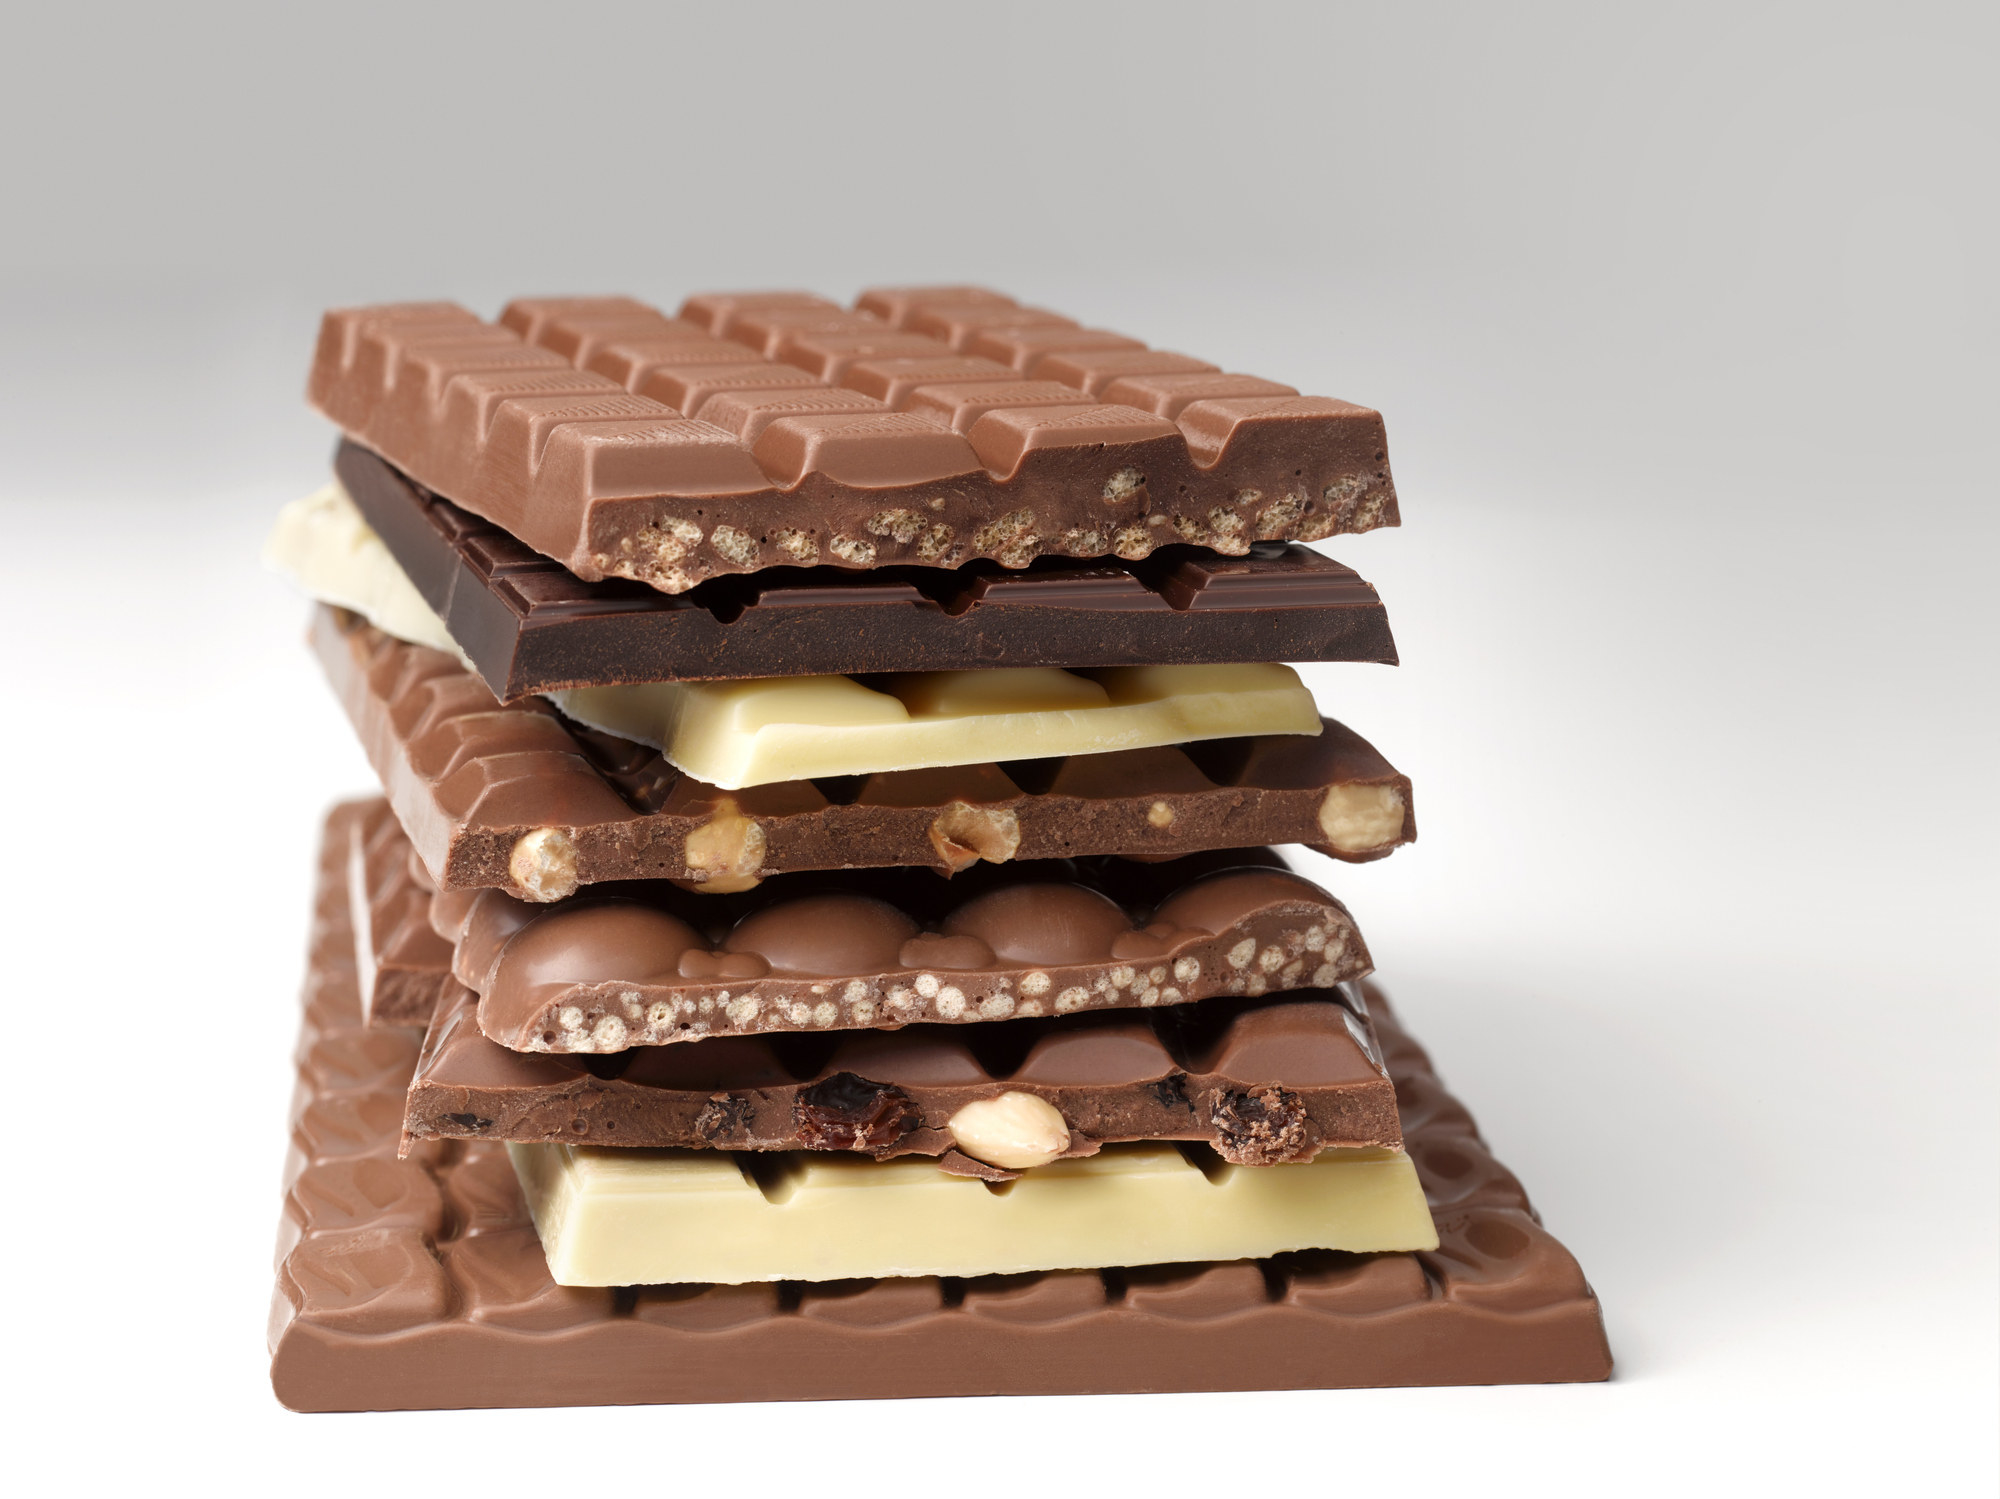 Stack of chocolate bars.